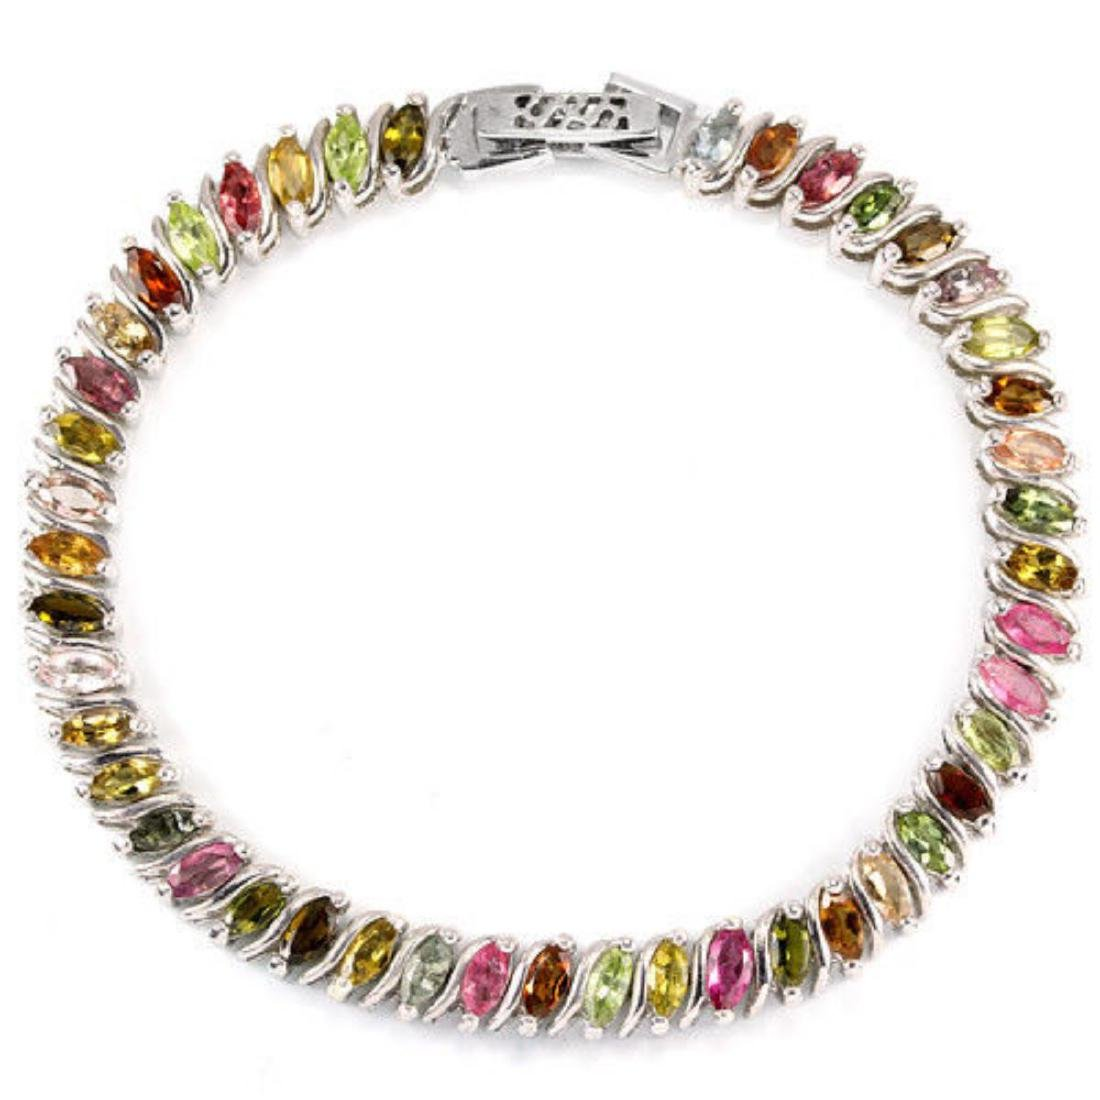 NATURAL Fancy Color TOURMALINE MARQUISE Bracelet